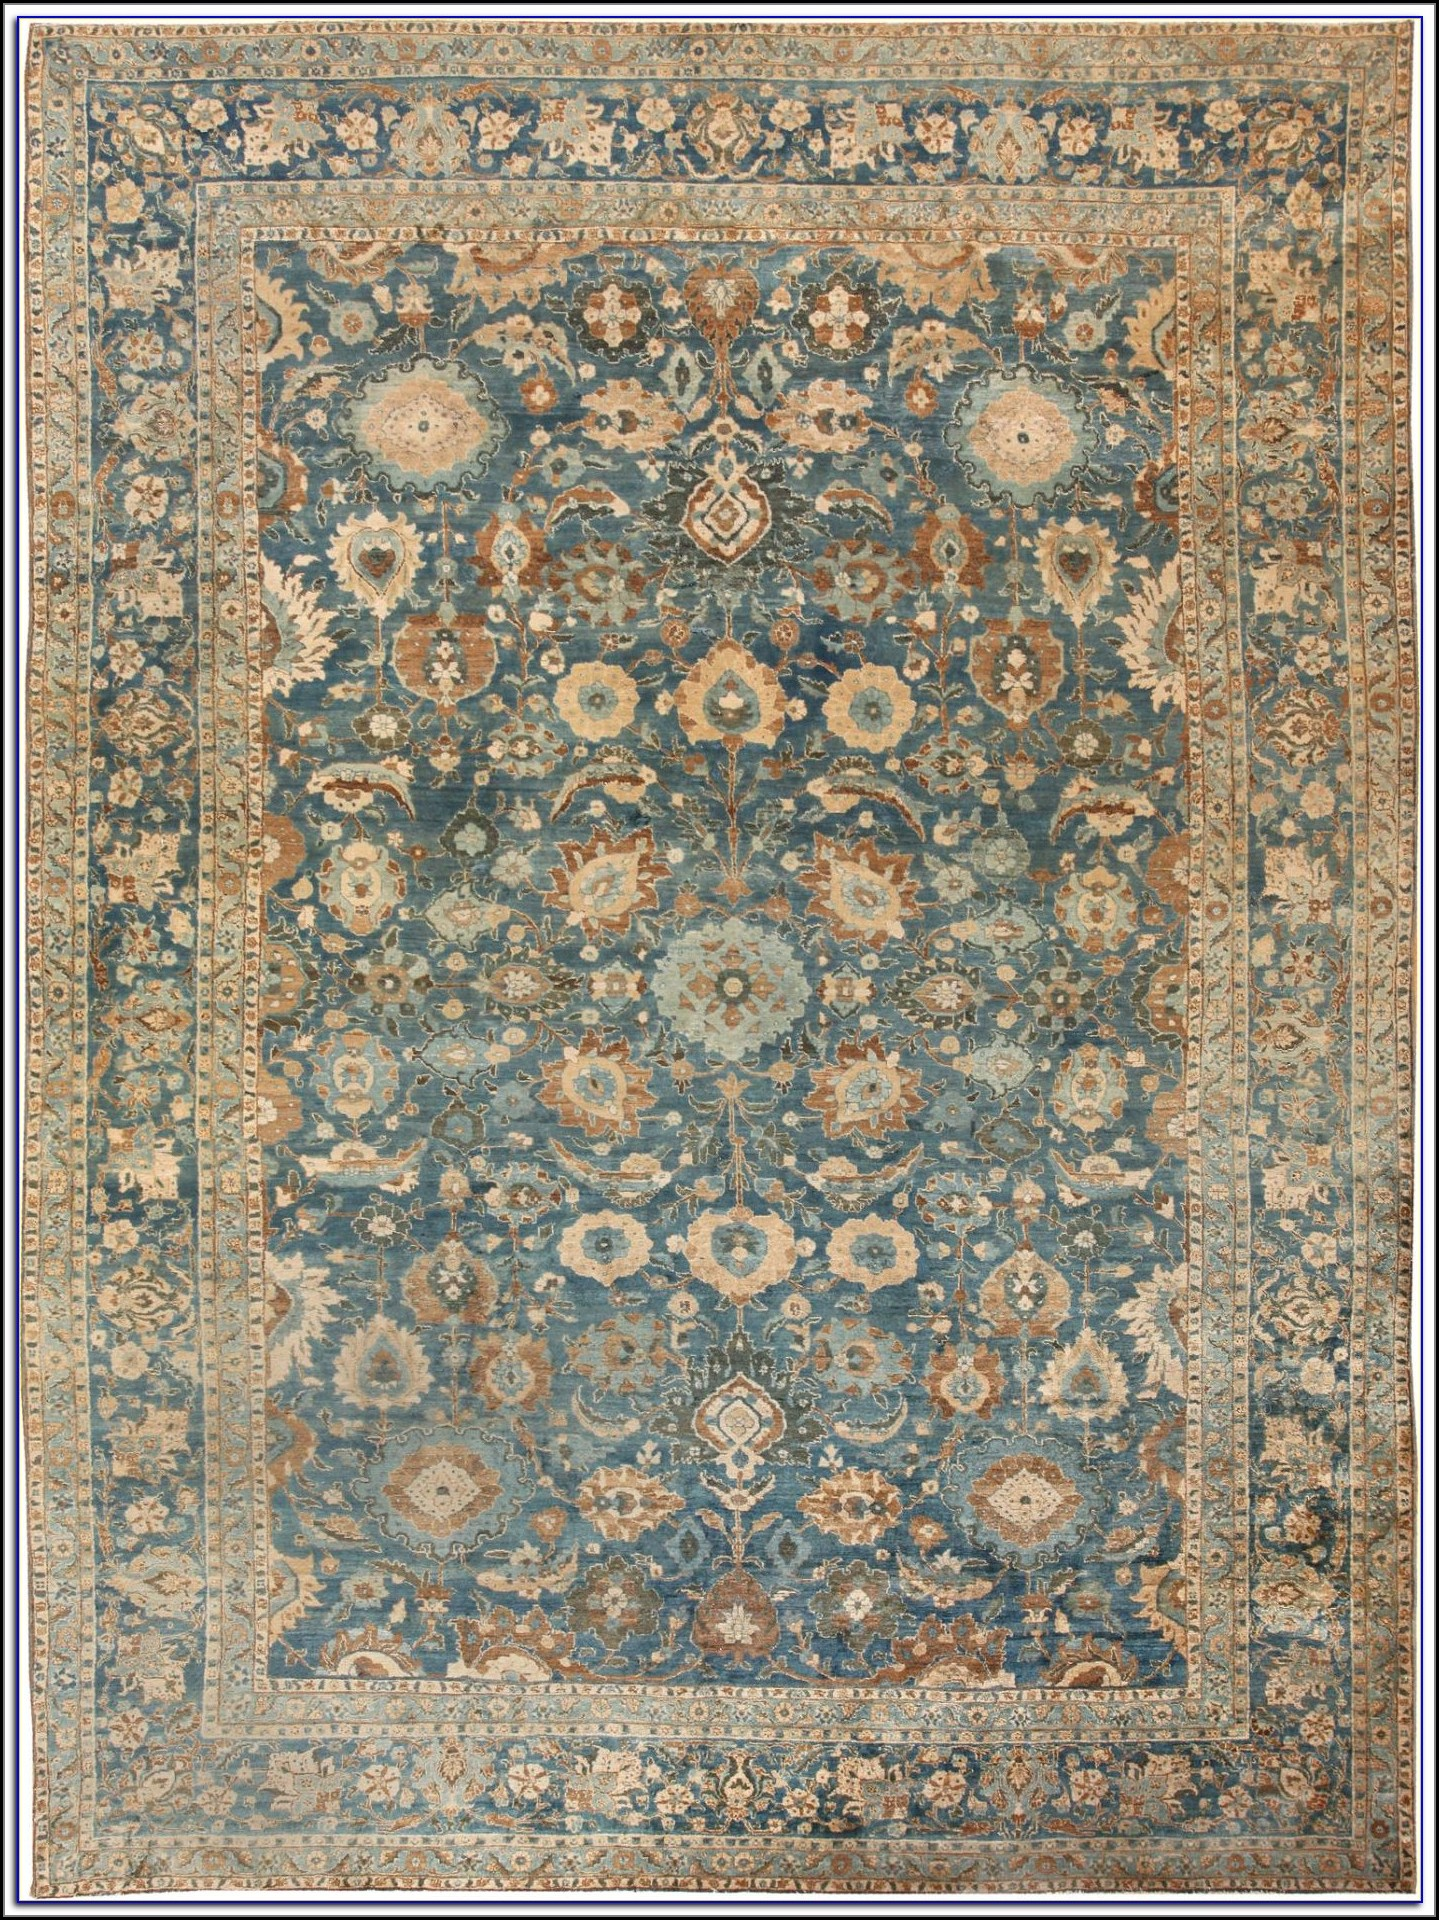 Antique Persian Rugs Sydney Home Decorating Ideas